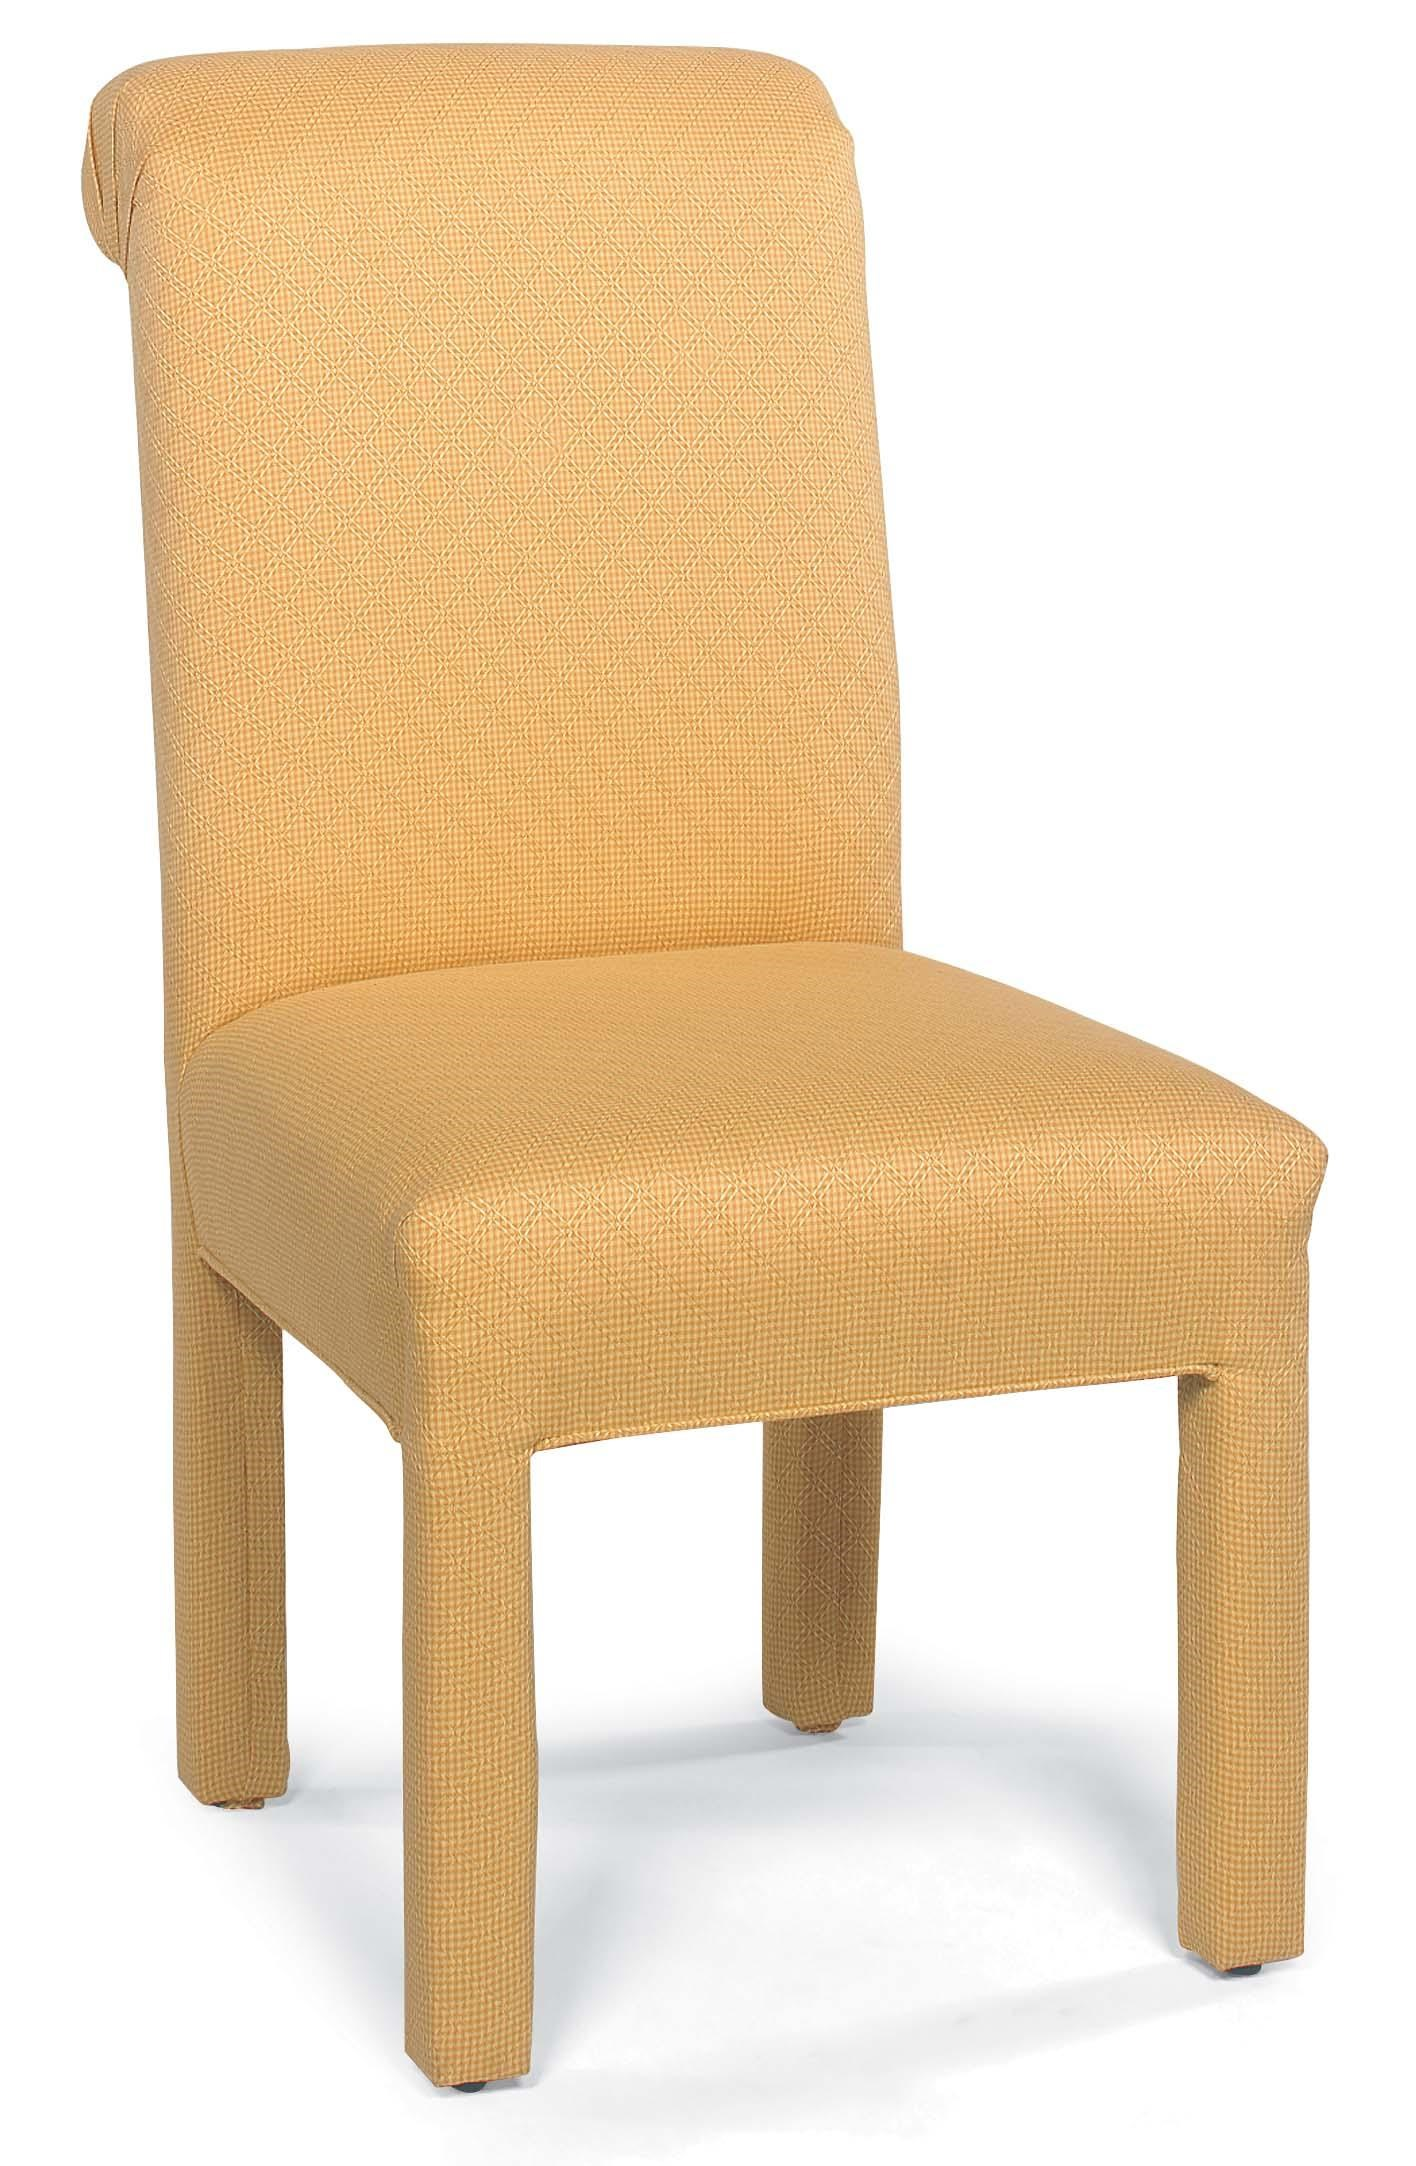 Chairs Stationary Armless Chair With Upholstered Legs By Fairfield